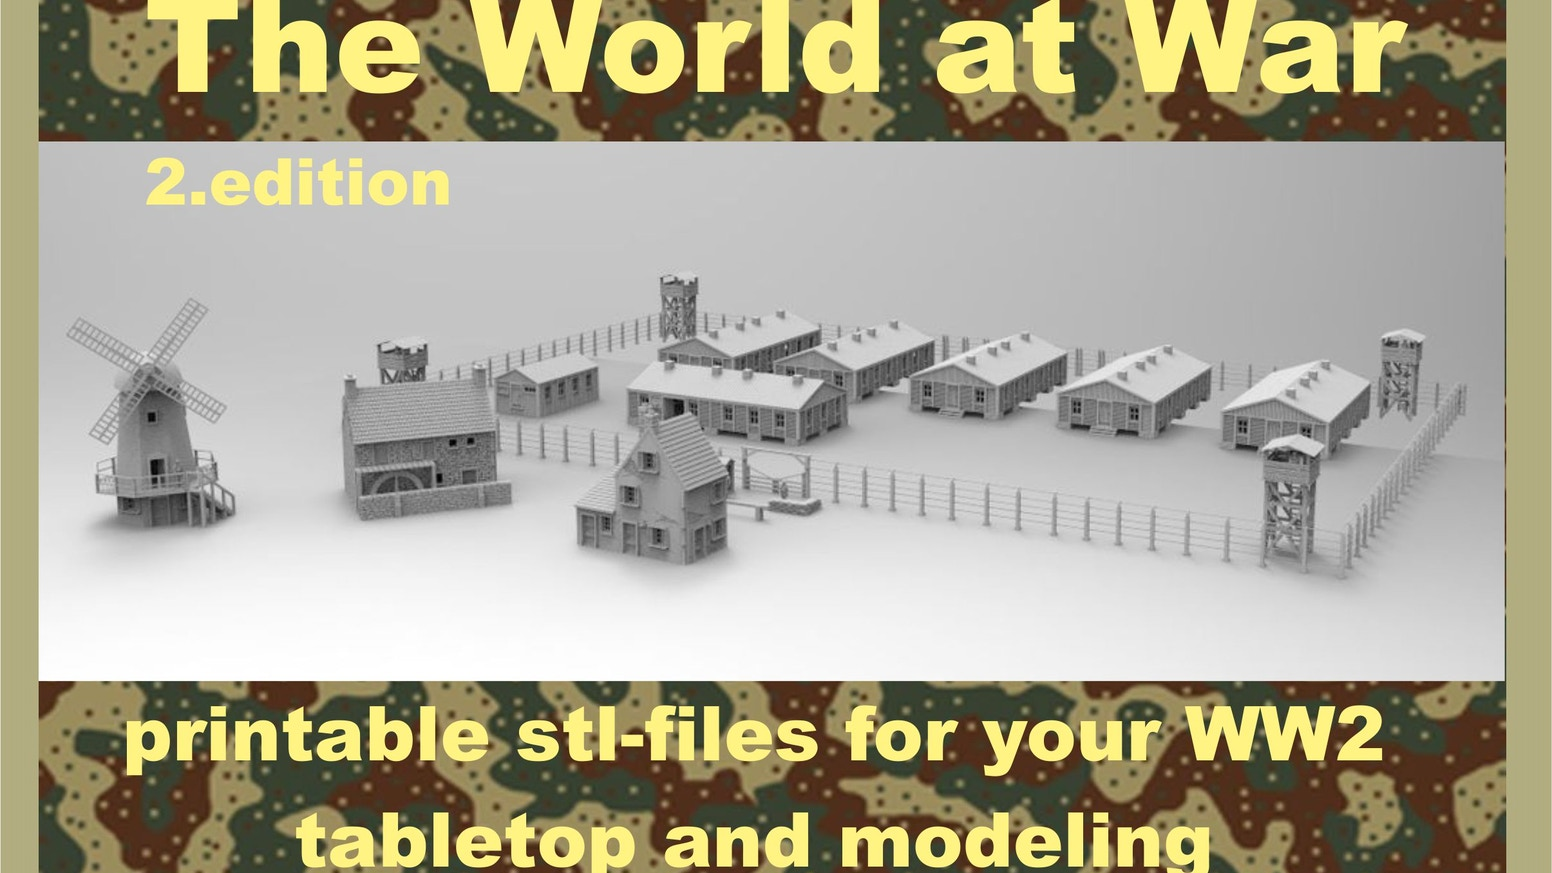 The World at War part II, 3d printable files for tabletop and modeling